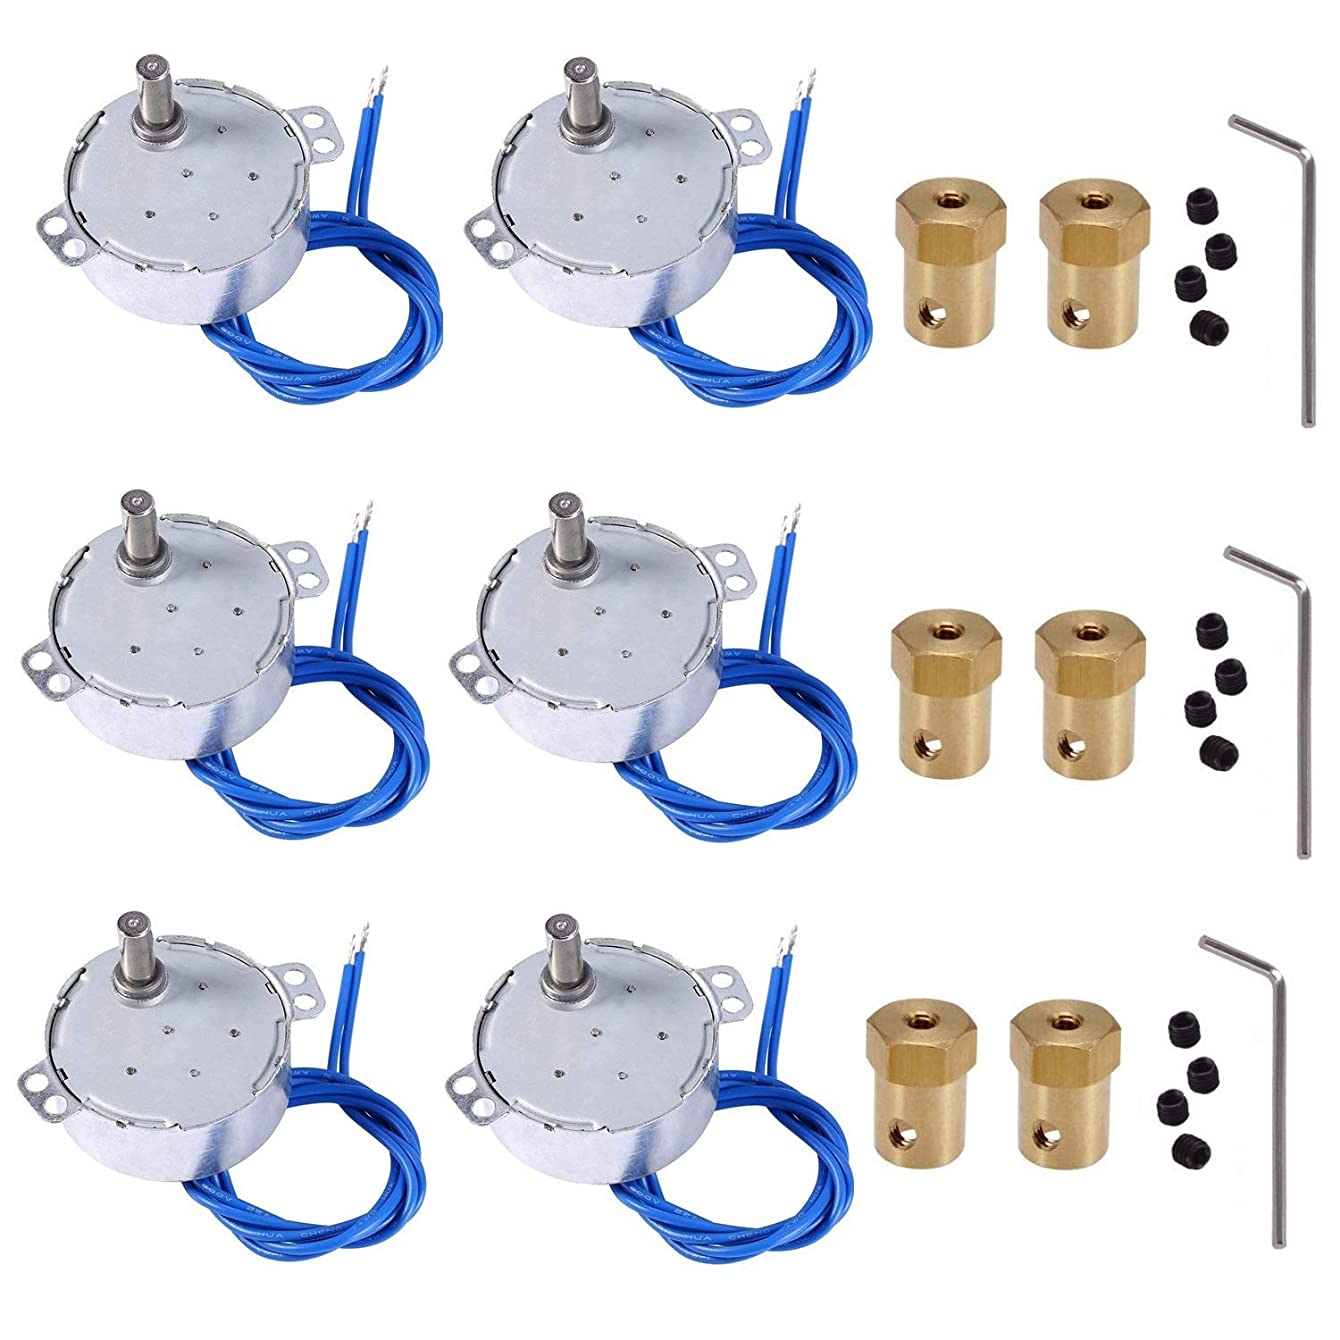 6PCS Turntable motor Synchronous Synchron Motor 50/60Hz AC 100~127V CCW/CW 4W 2.5-3RPM/MIN CCW/CW with 7mm Flexible Coupling Connector For Cup Turner,Hand-Made, School Project, Model (2.5-3RPM)